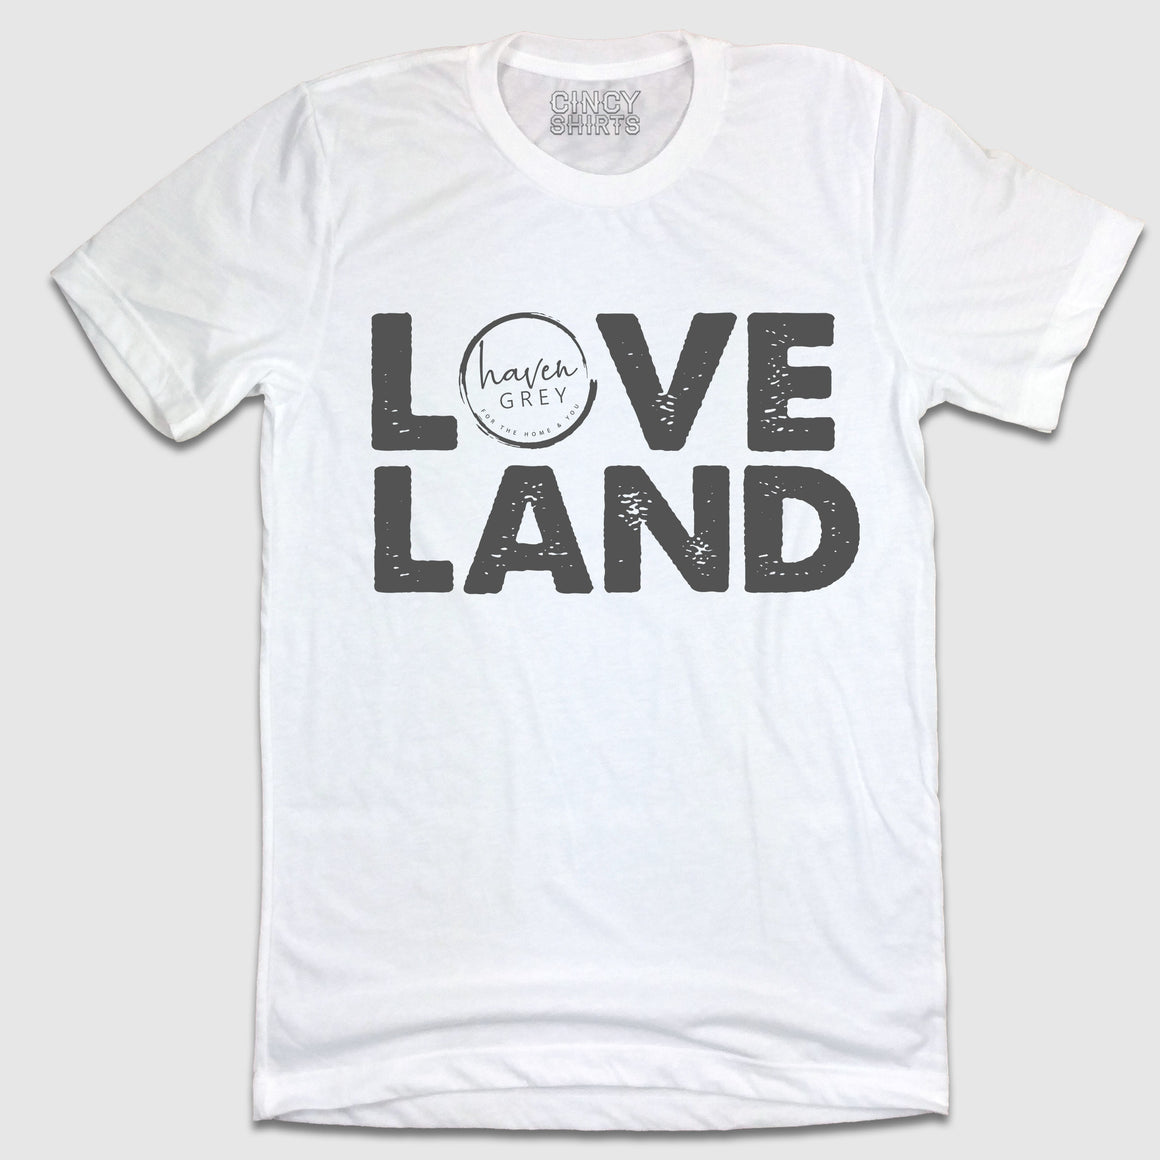 Loveland - Haven Grey